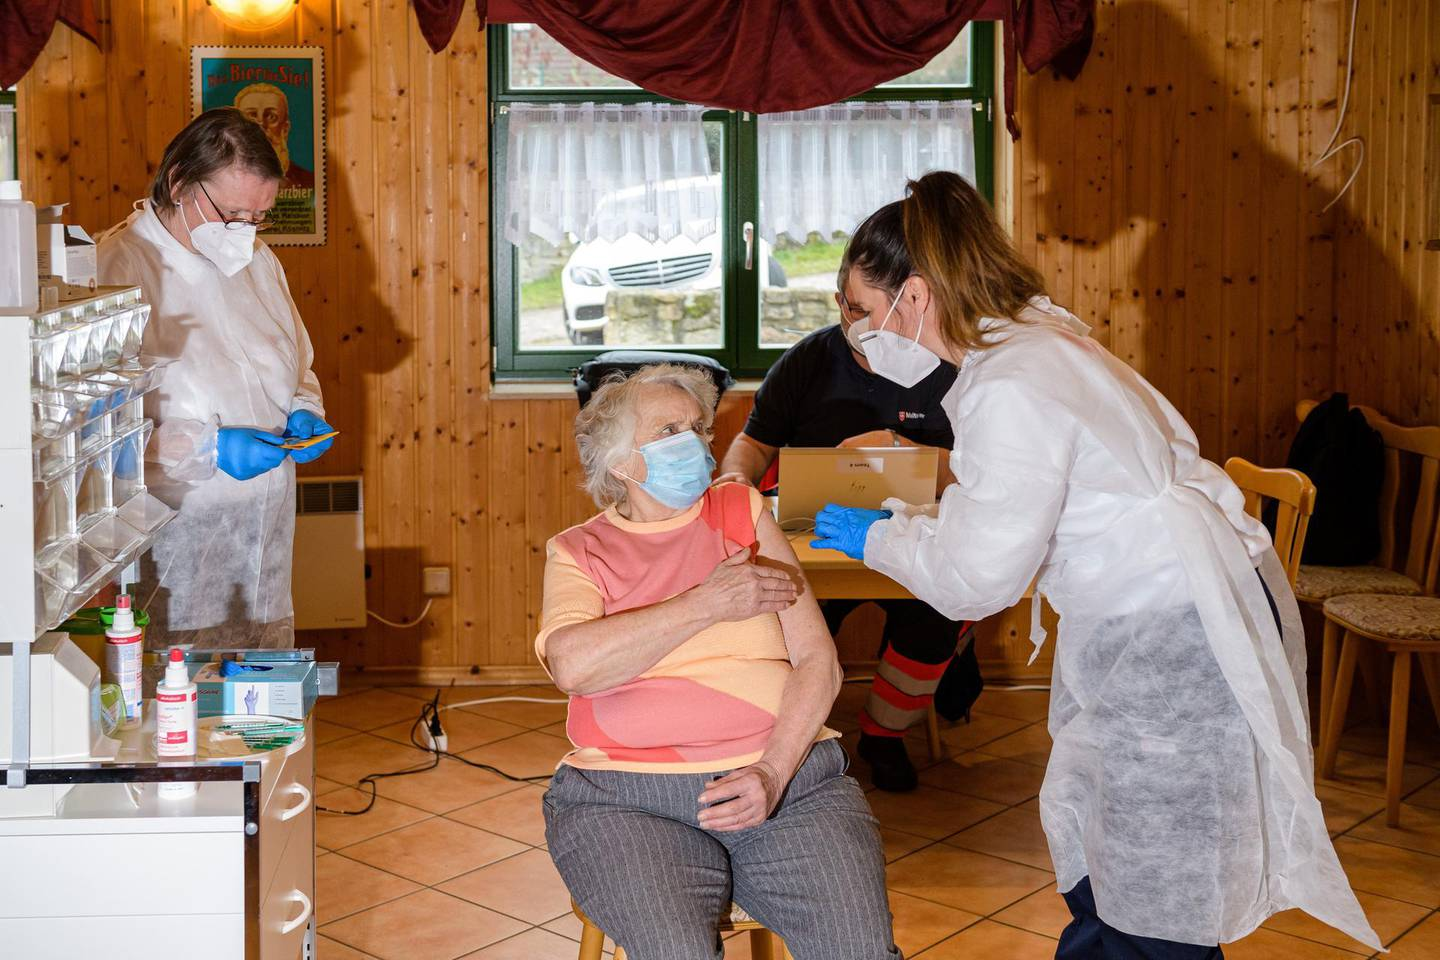 NAUMBURG, GERMANY - MARCH 01: Nurse Susann Wolter (R) vaccinates Renate Bauer (C), 82, with the Pfizer-BioNTech vaccine in an old clubhouse during the novel coronavirus pandemic in Seidewitz on March 1, 2021 near Naumburg, Germany. So far approximately 4.4% of Germany's population has received the first dose of a Covid-19 vaccine. (Photo by Jens Schlueter/Getty Images)